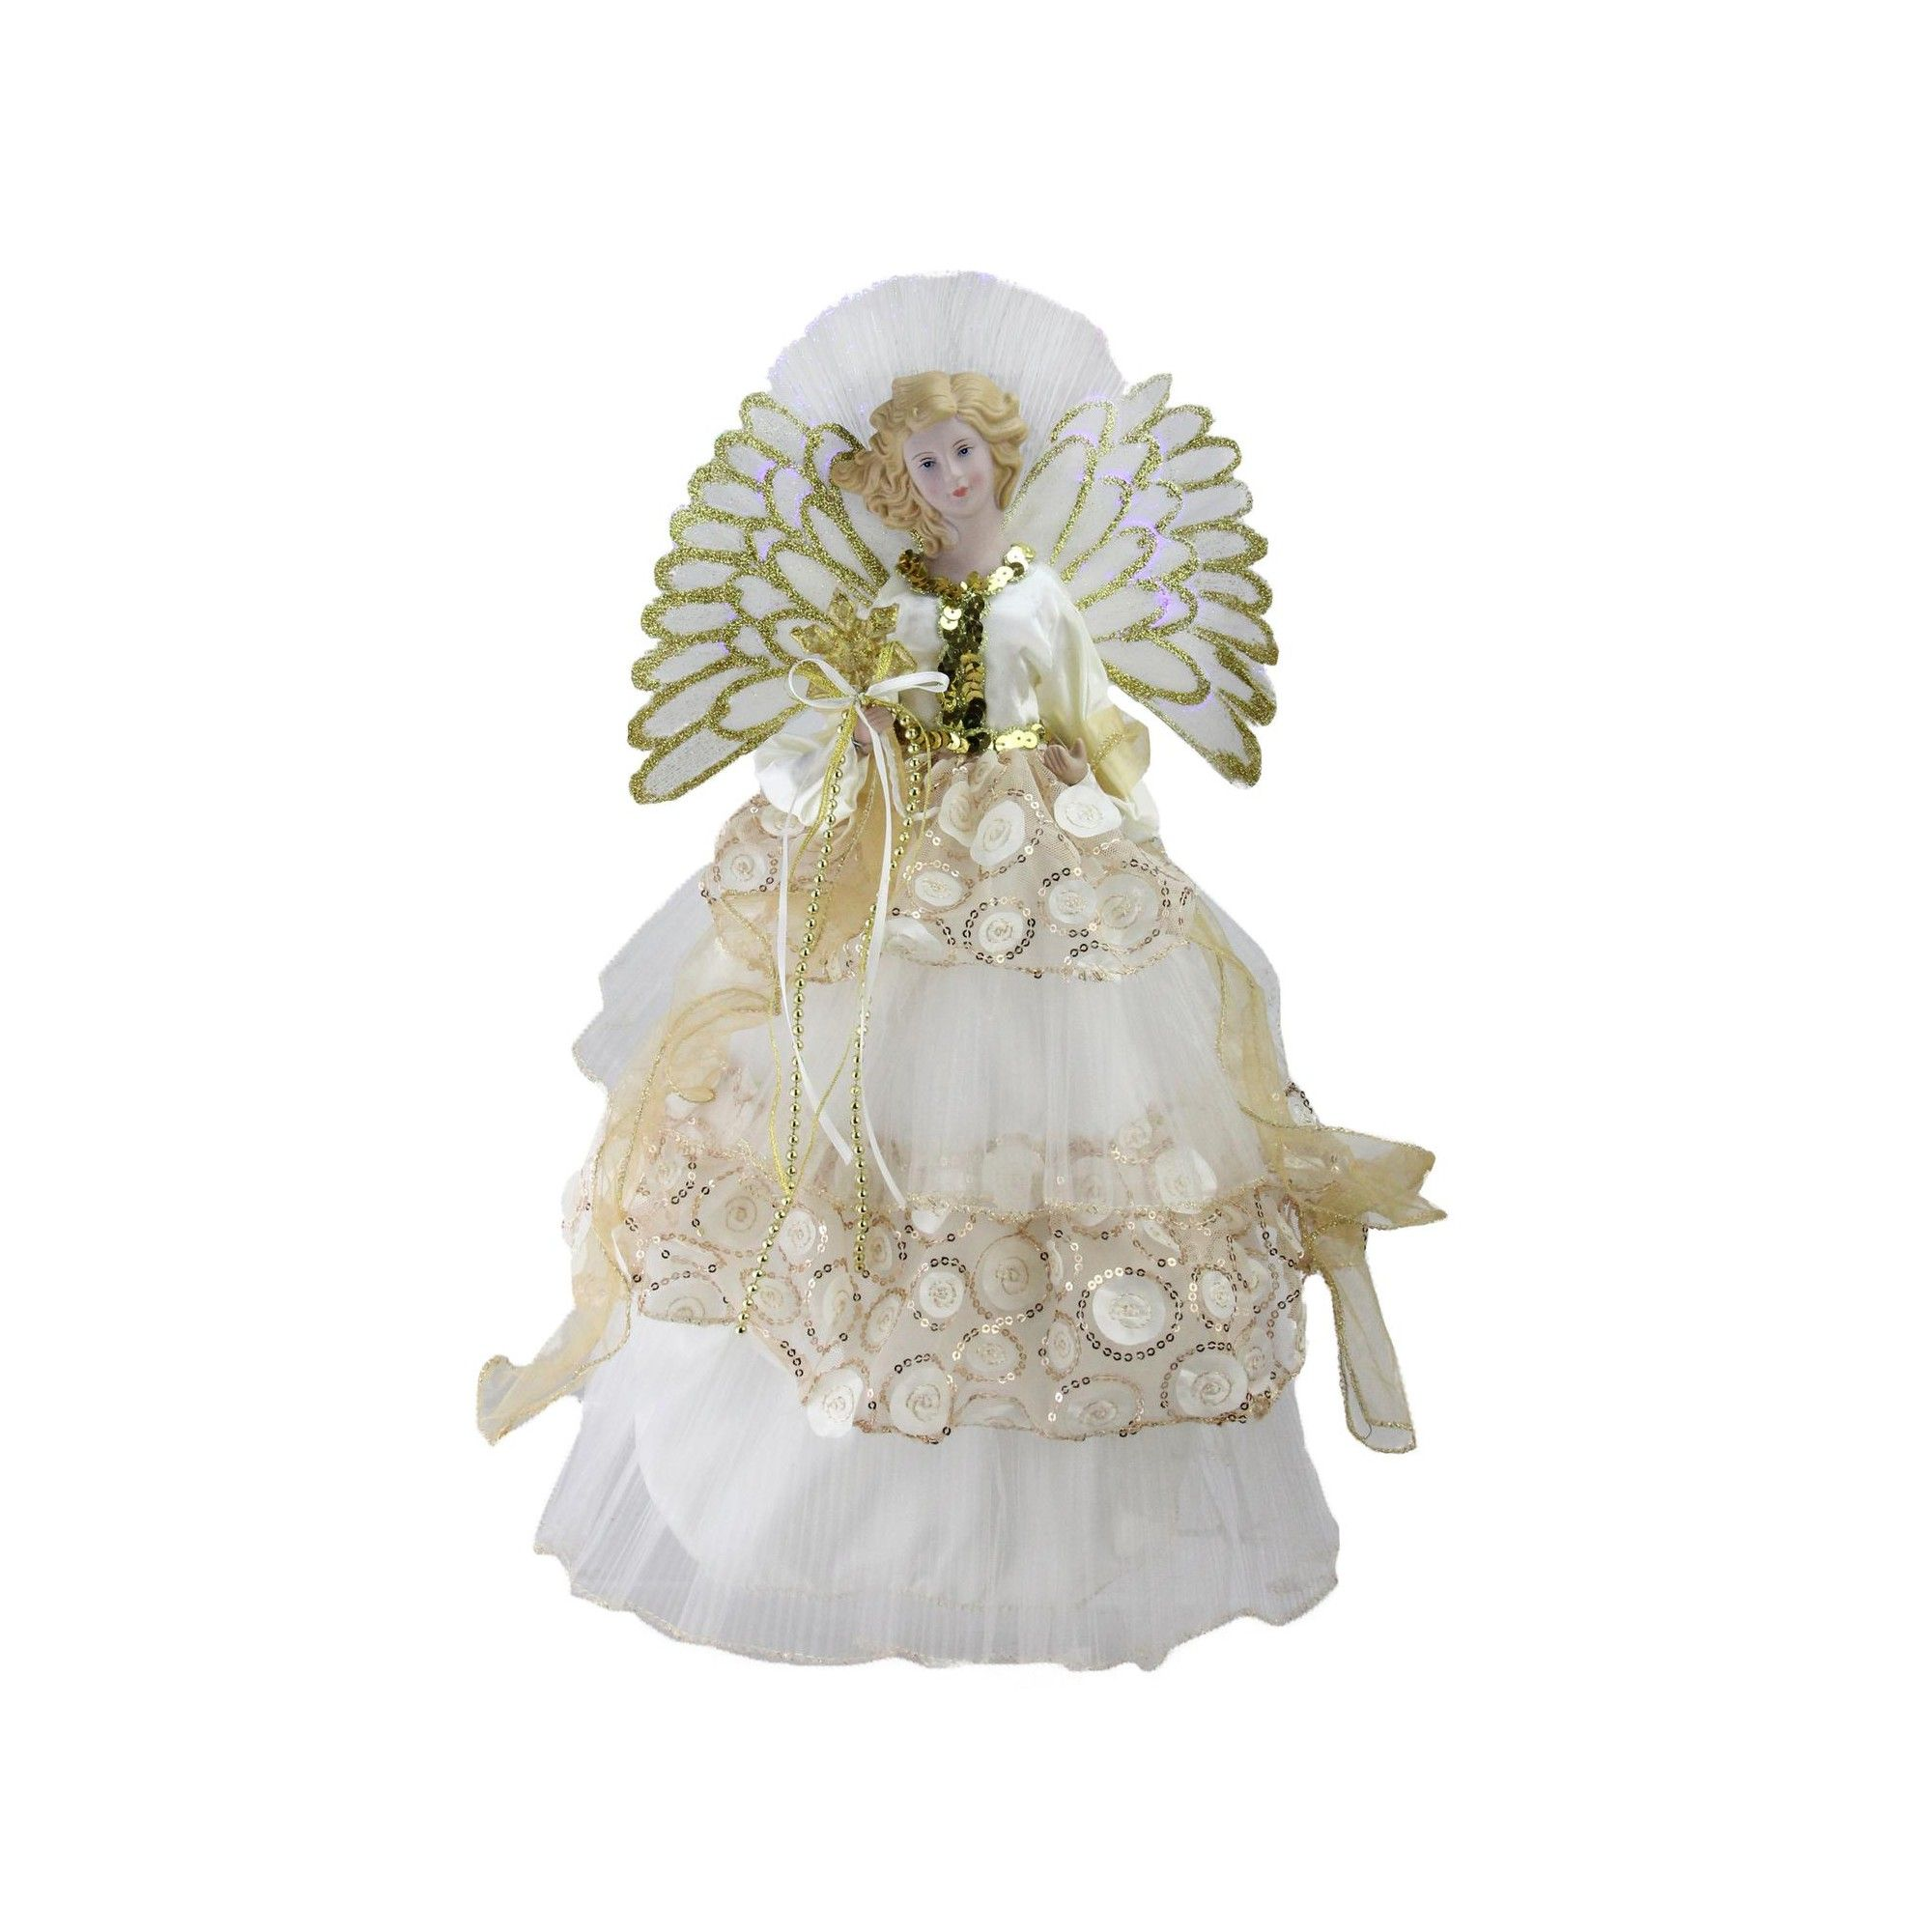 Northlight 16 Lighted Fiber Optic Angel in Cream and Gold Sequined ...